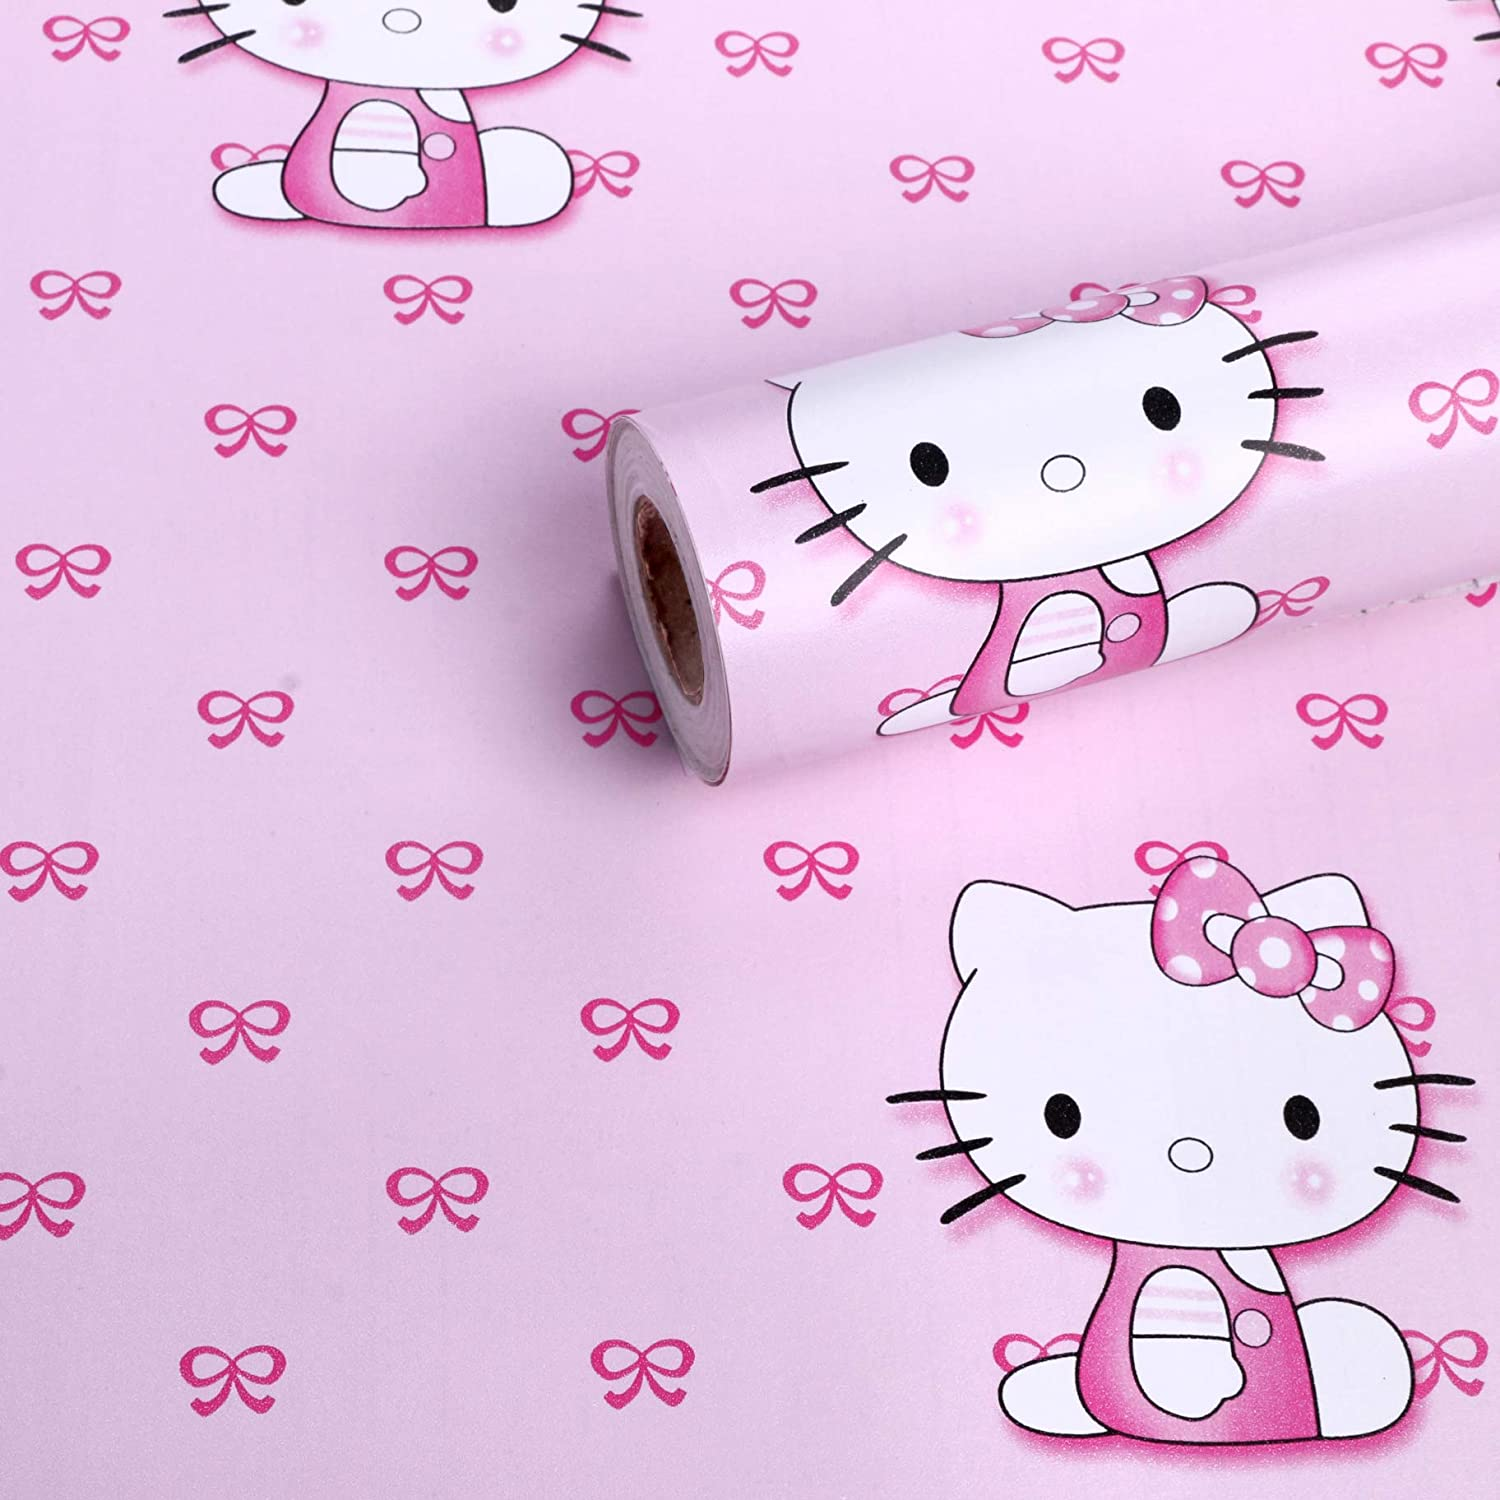 Oren Empower Cute Pink Kitty Diy Waterproof Wallpaper Specially Designed For Kids Bedroom Living Room Nursery Playing Area Etc Wall Covering Area 45cm 1 5ft X 330cm 11ft Pink Amazon In Home Improvement